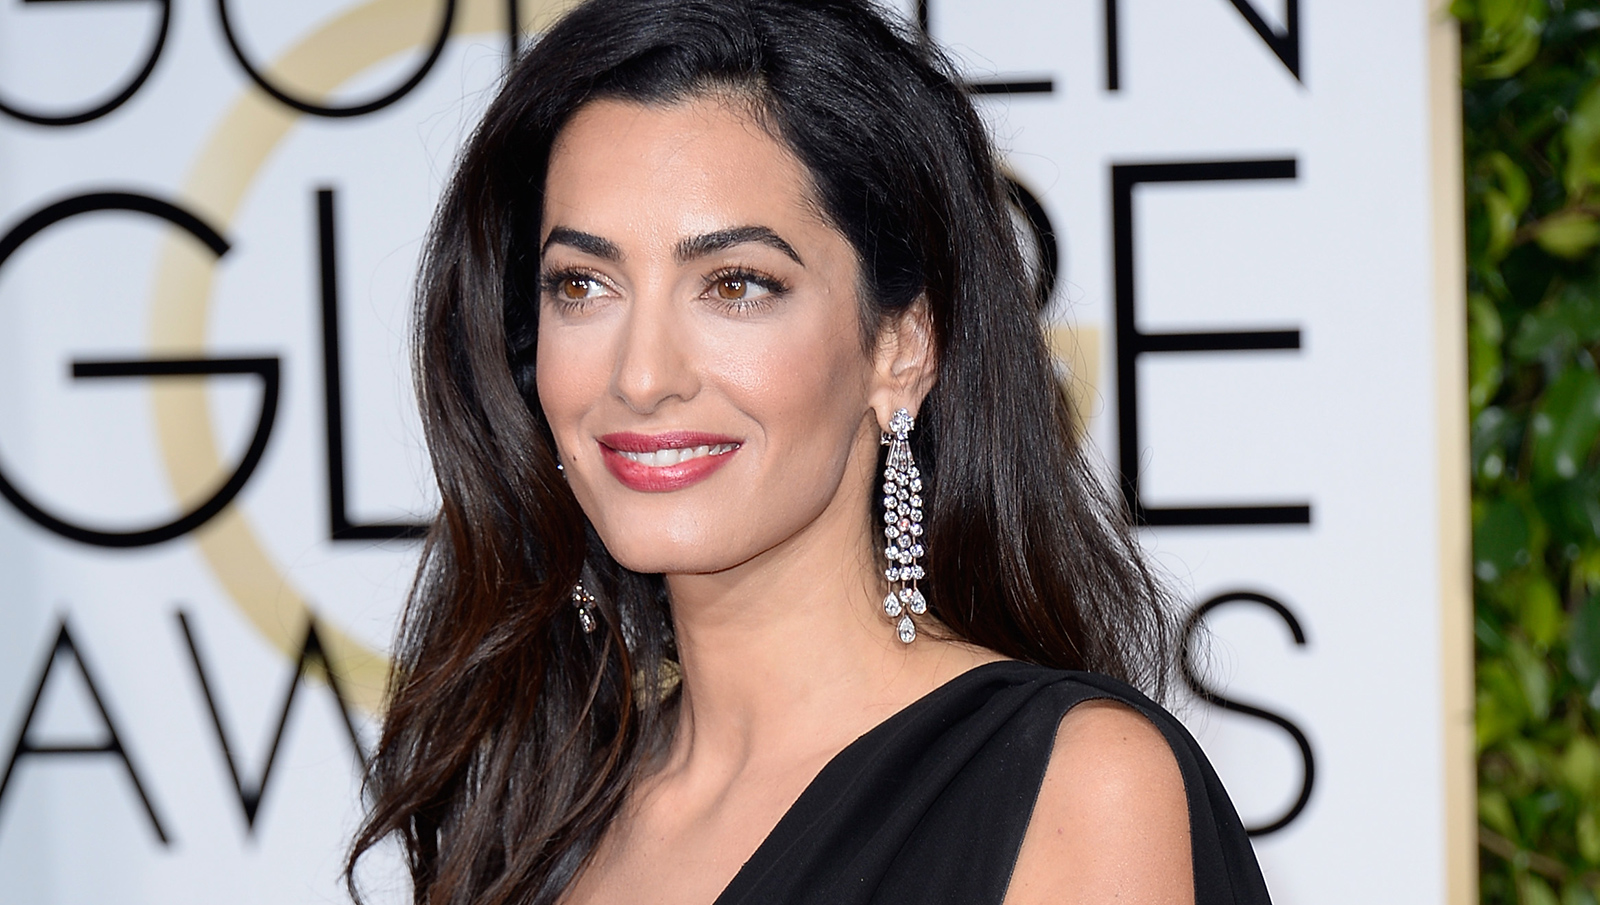 Amal Clooney's awkward red carpet moment | AOL Features